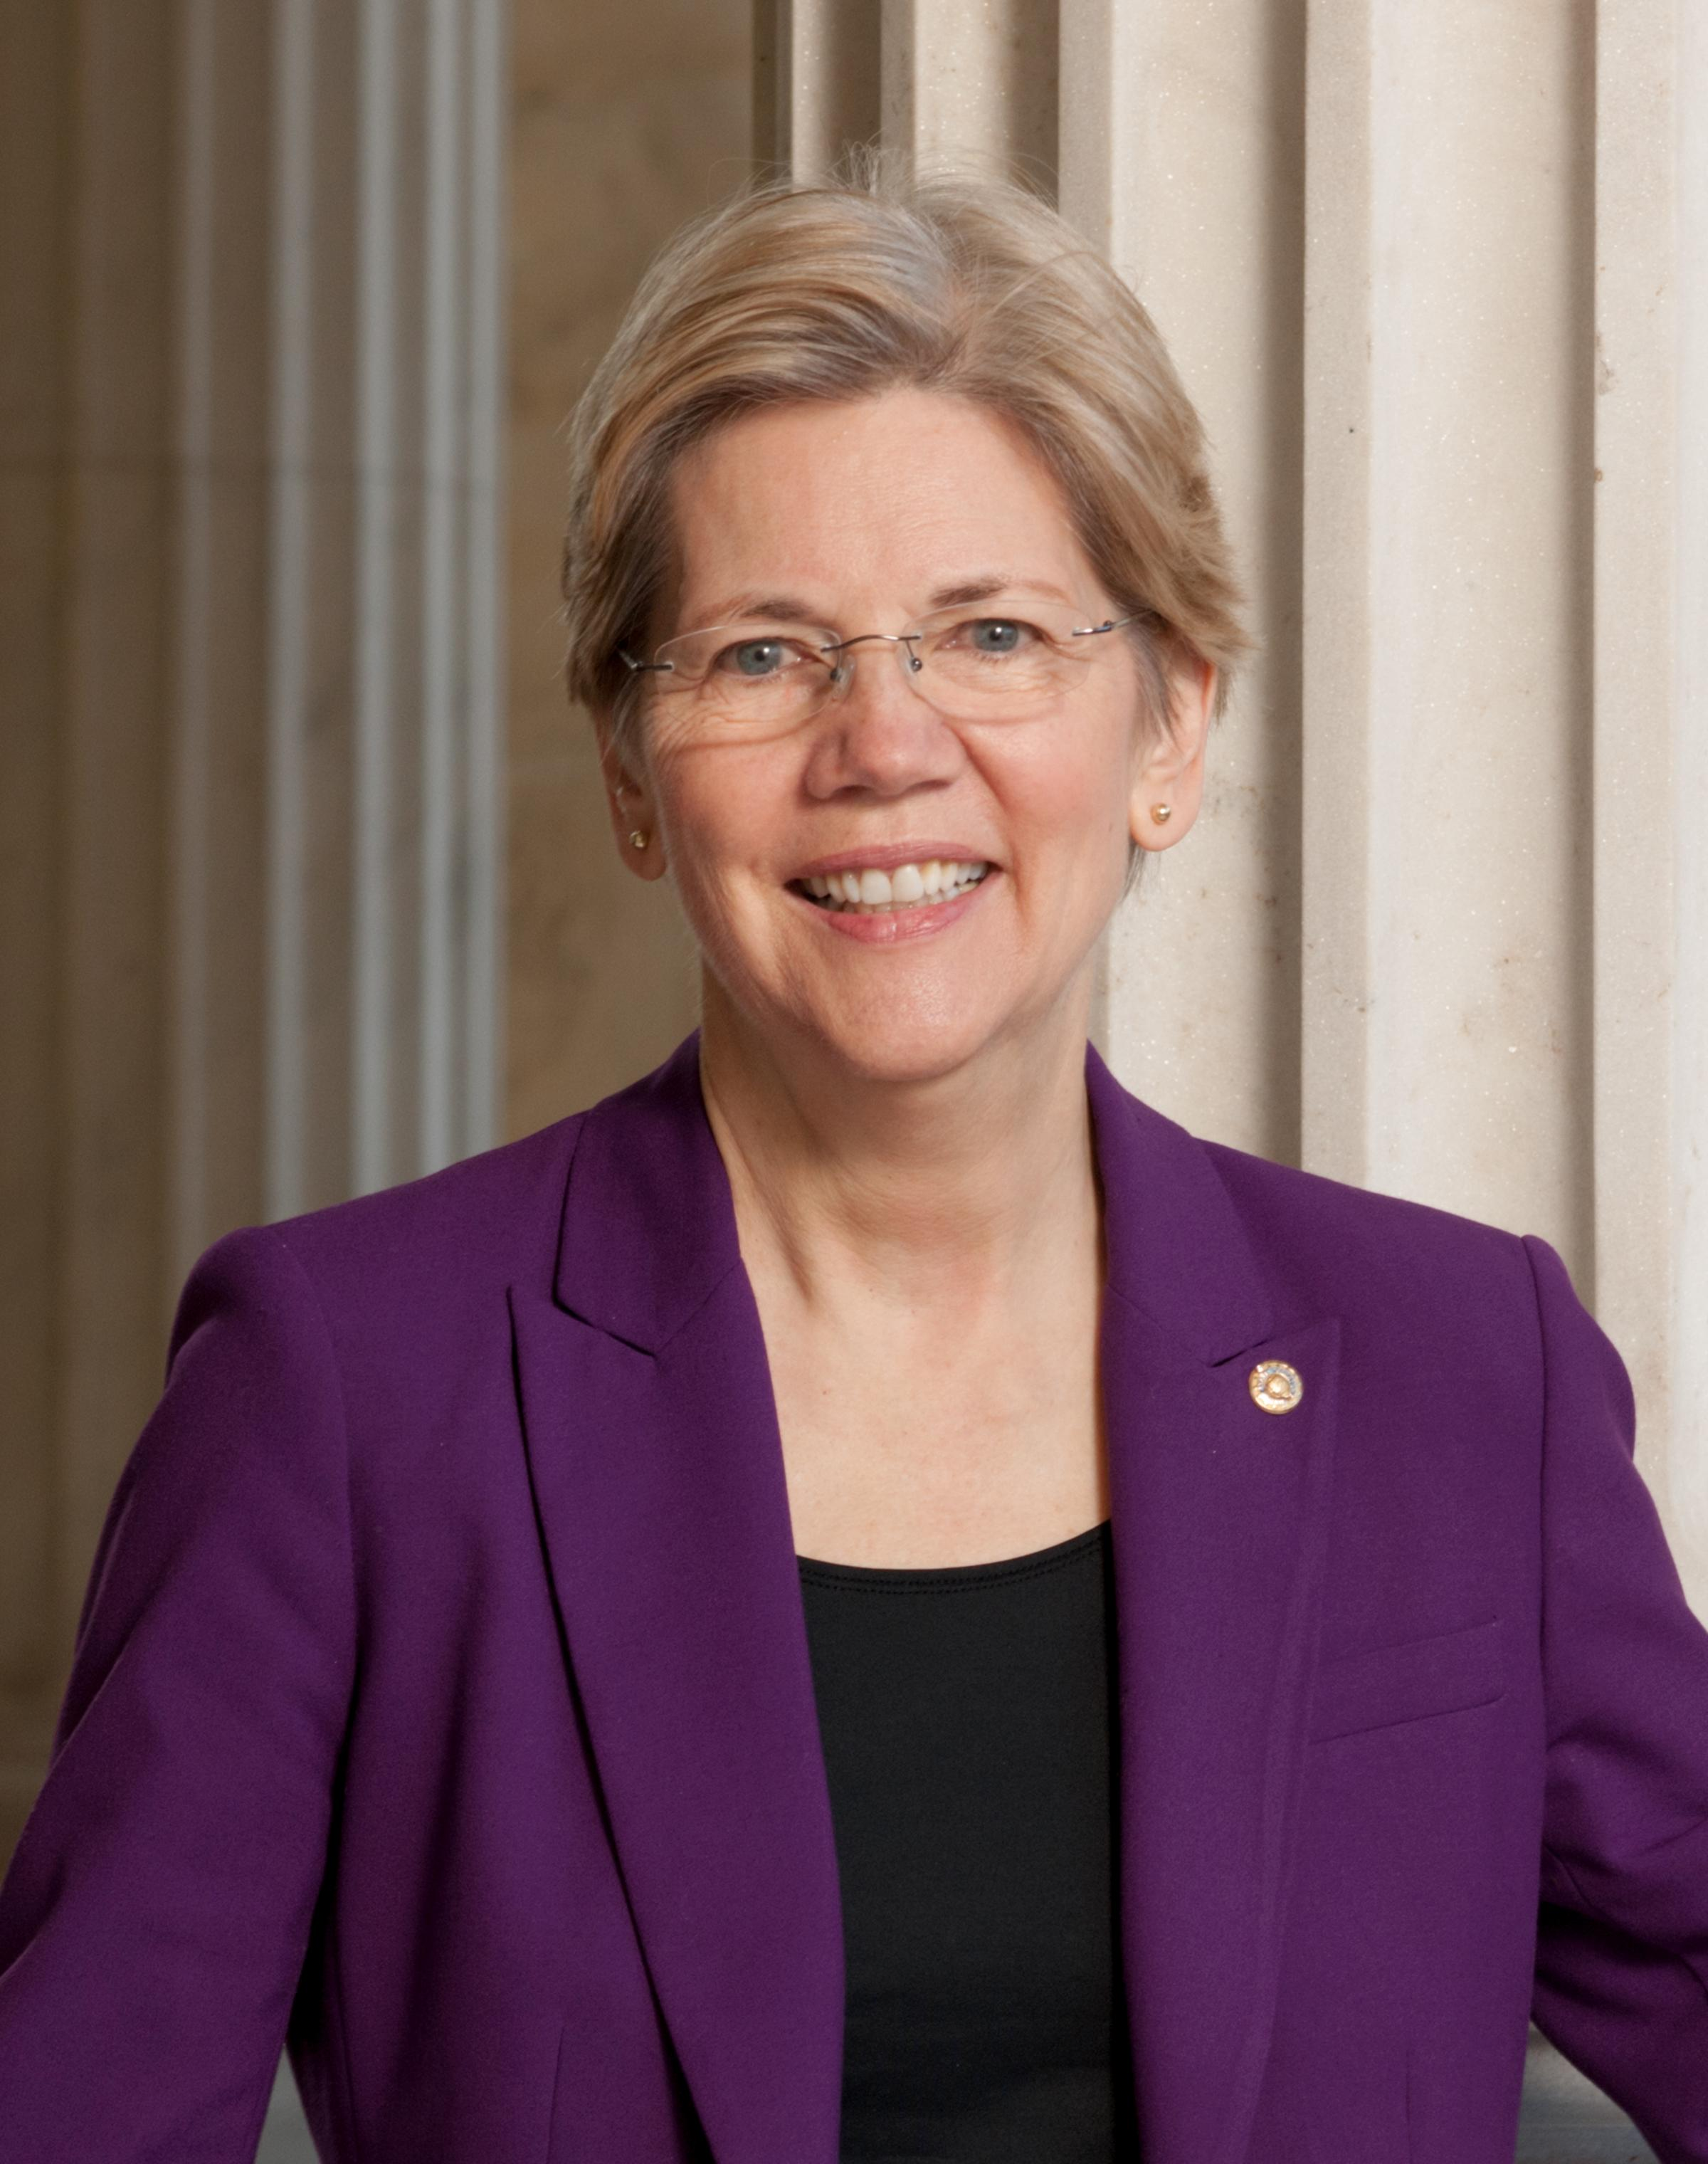 U.S. Senator Elizabeth Warren to Serve as BCC's Commencement Speaker